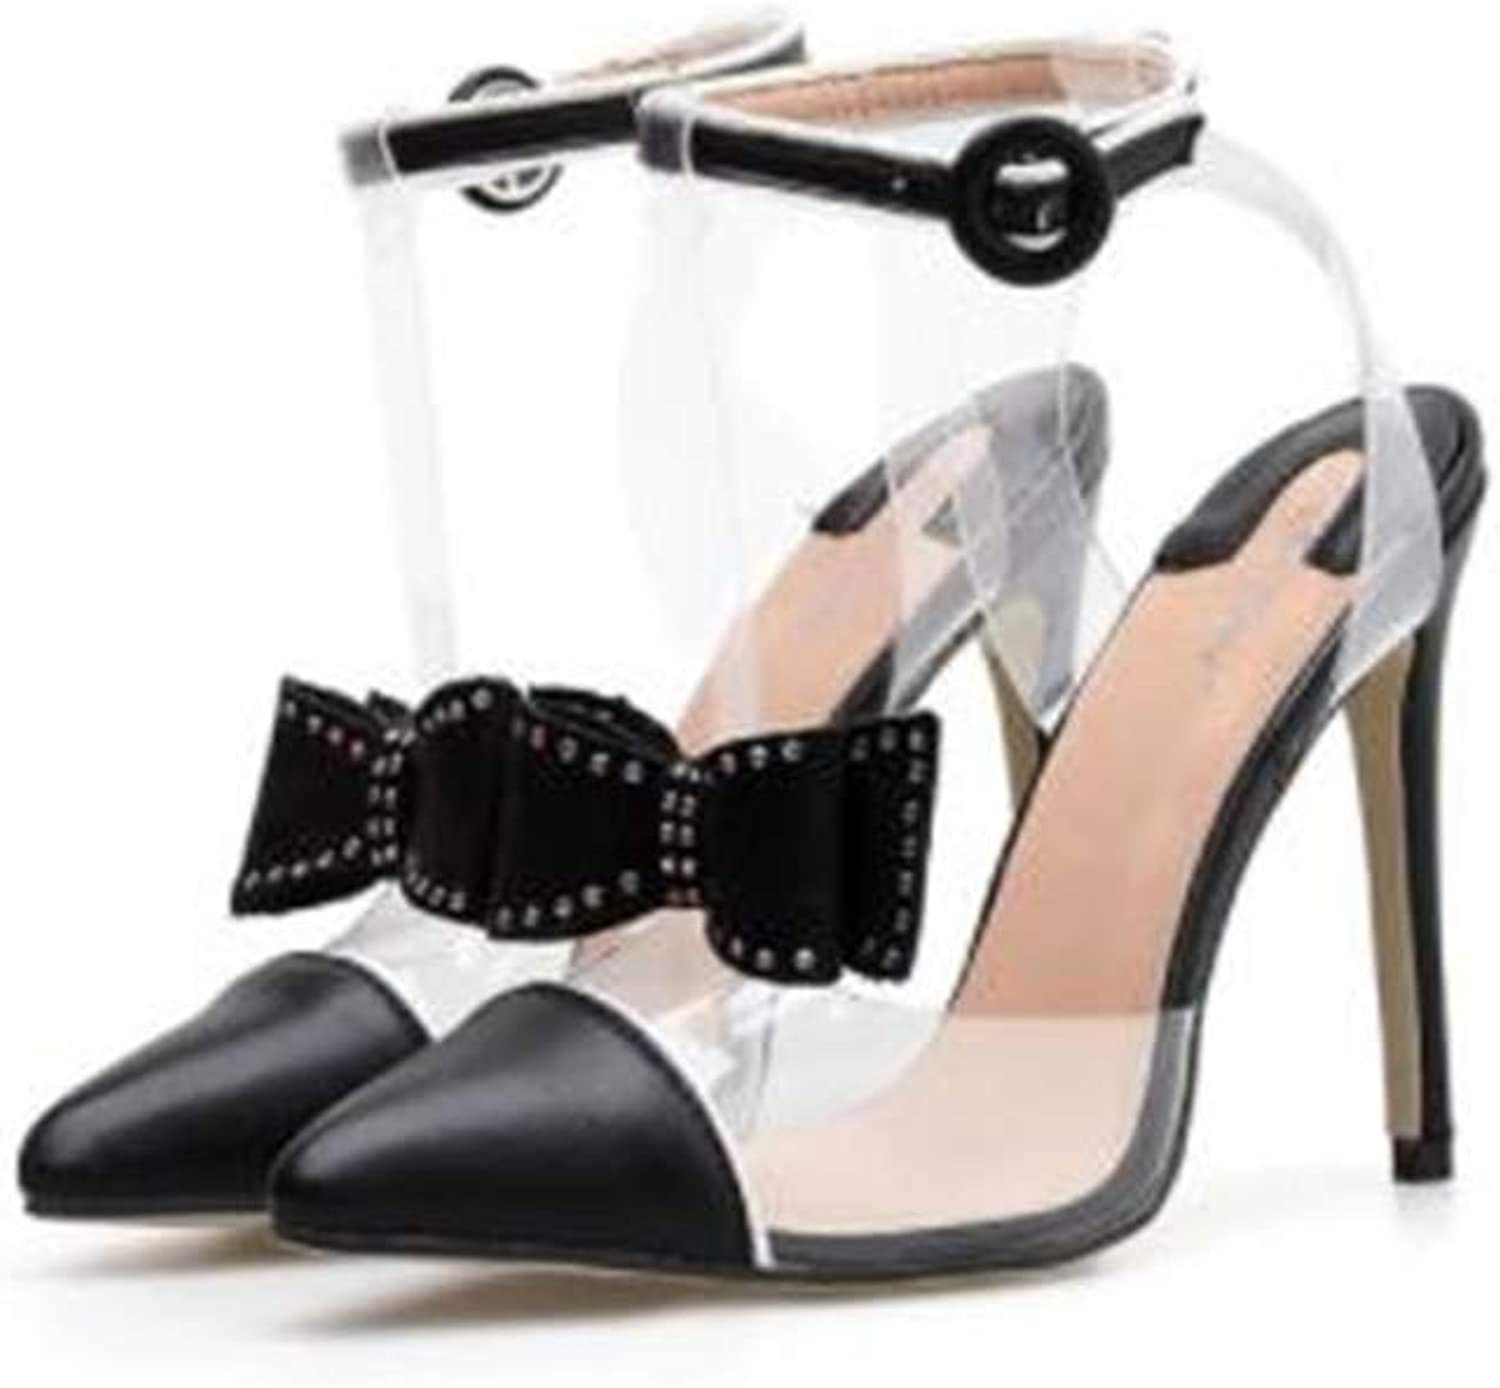 WYQQ Bow Pointed Stiletto high Heel Transparent shoes Sandals Suitable for Women